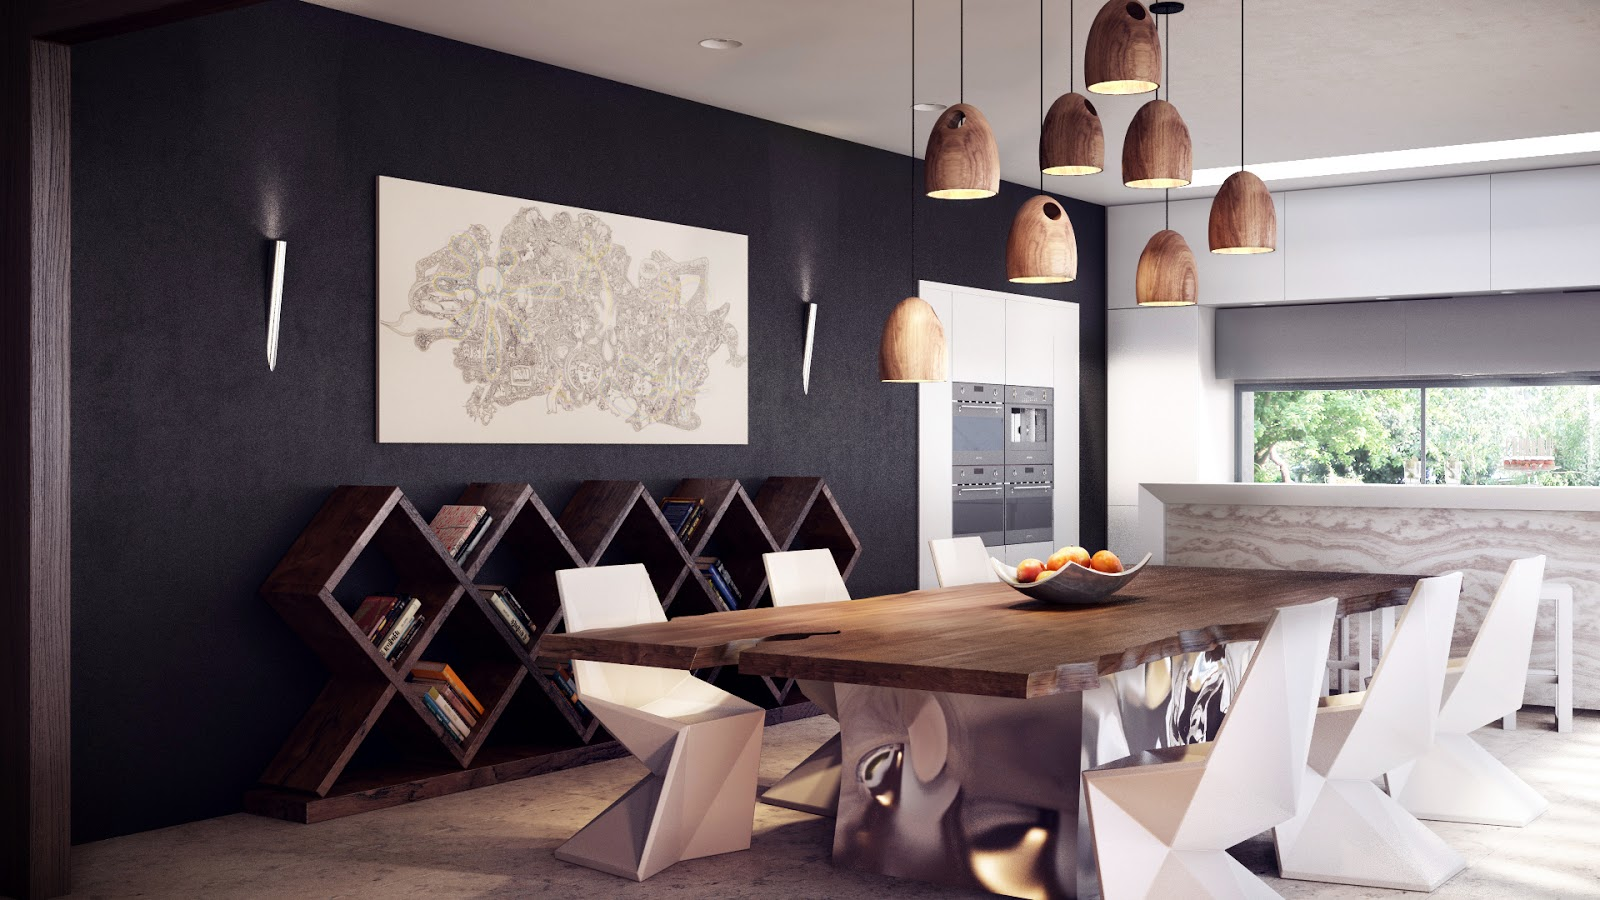 Astonishing Dining Room Using Wooden Table and Chandelier For Modern Rustic Decor